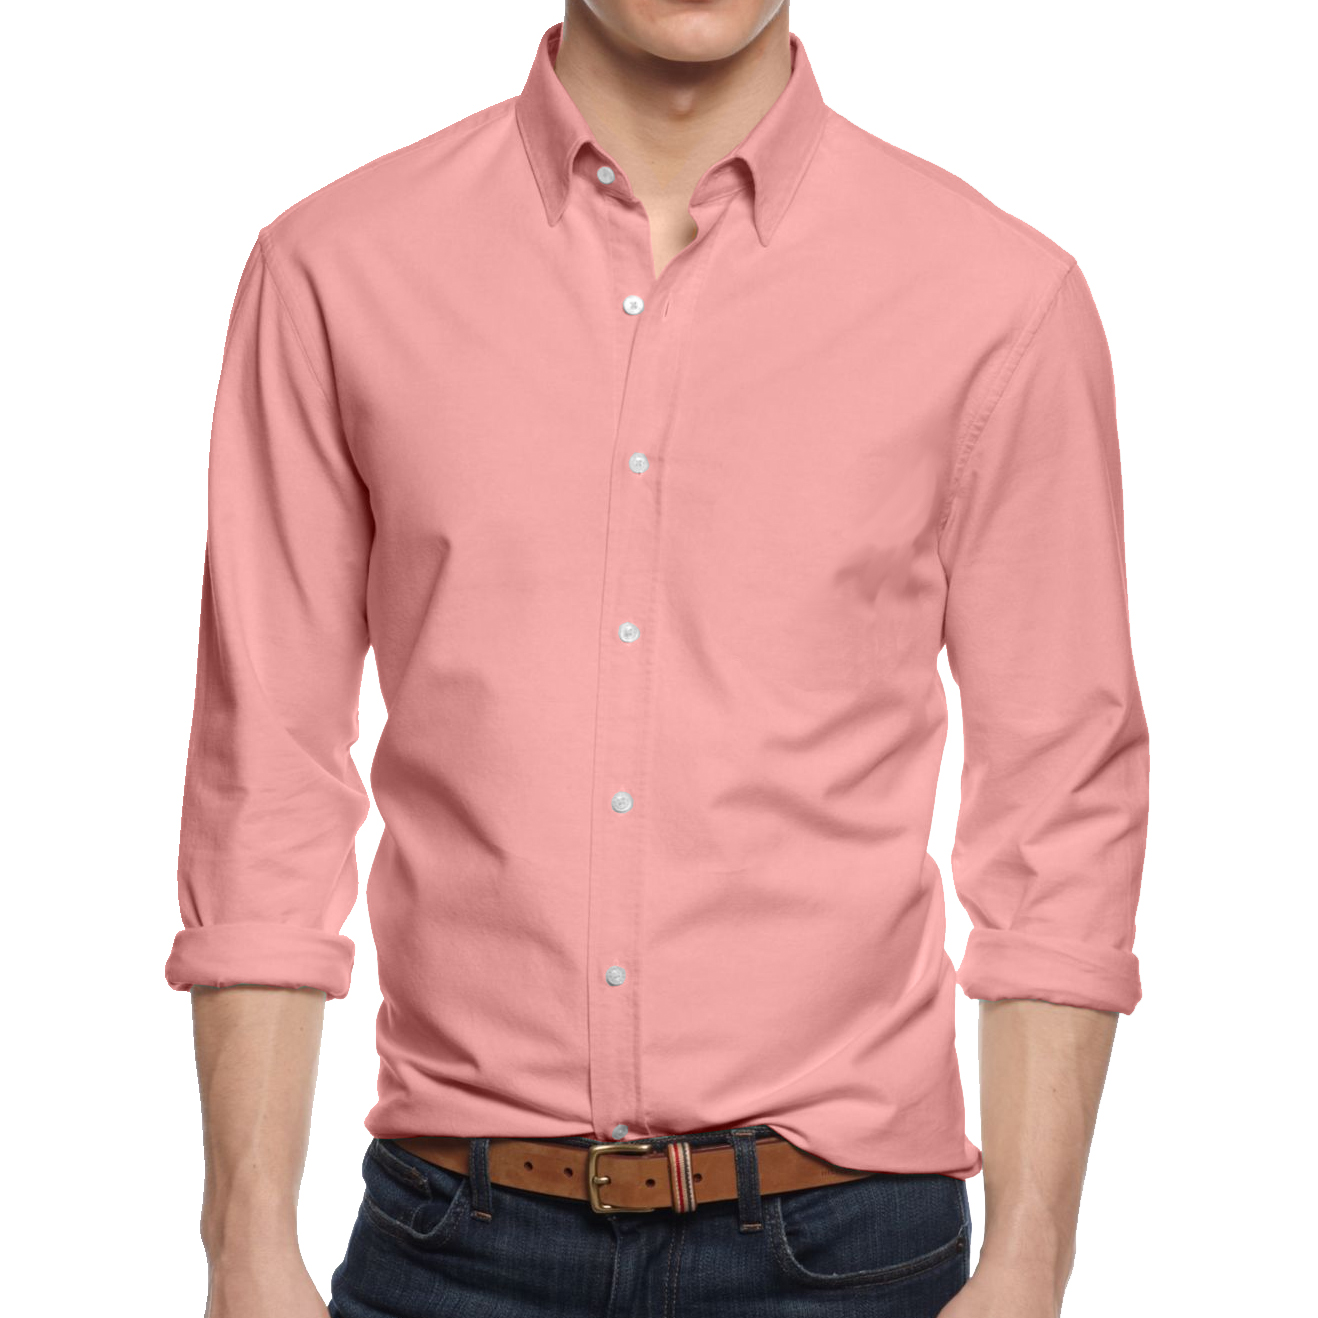 Best long sleeve shirts for men for sale. Cheap long sleeve shirts for men with excellent quality and fast delivery. | bestsupsm5.cf Long Sleeve Dress For Women Casual Long Dress For Women Long Dresses For Women Long Sleeve Formal Dress Handbag For Women Shoulder Bag For Women Leather Bag For Women White Romper For Women Bohemian Dress .